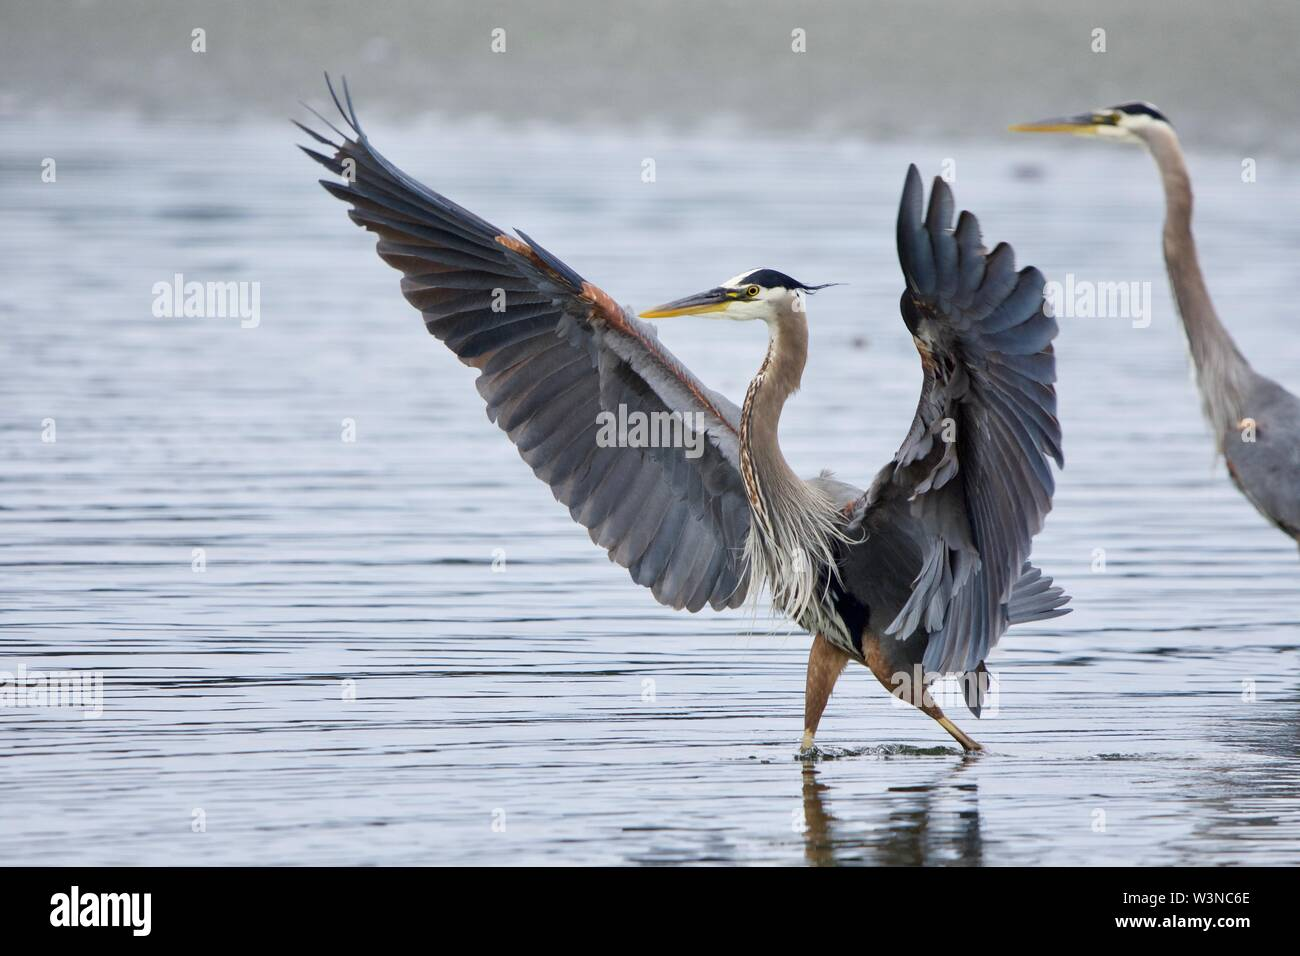 Great blue heron lands in a tide pool with wings extended wide, Witty's Lagoon, Vancouver Island, British Columbia - Stock Image